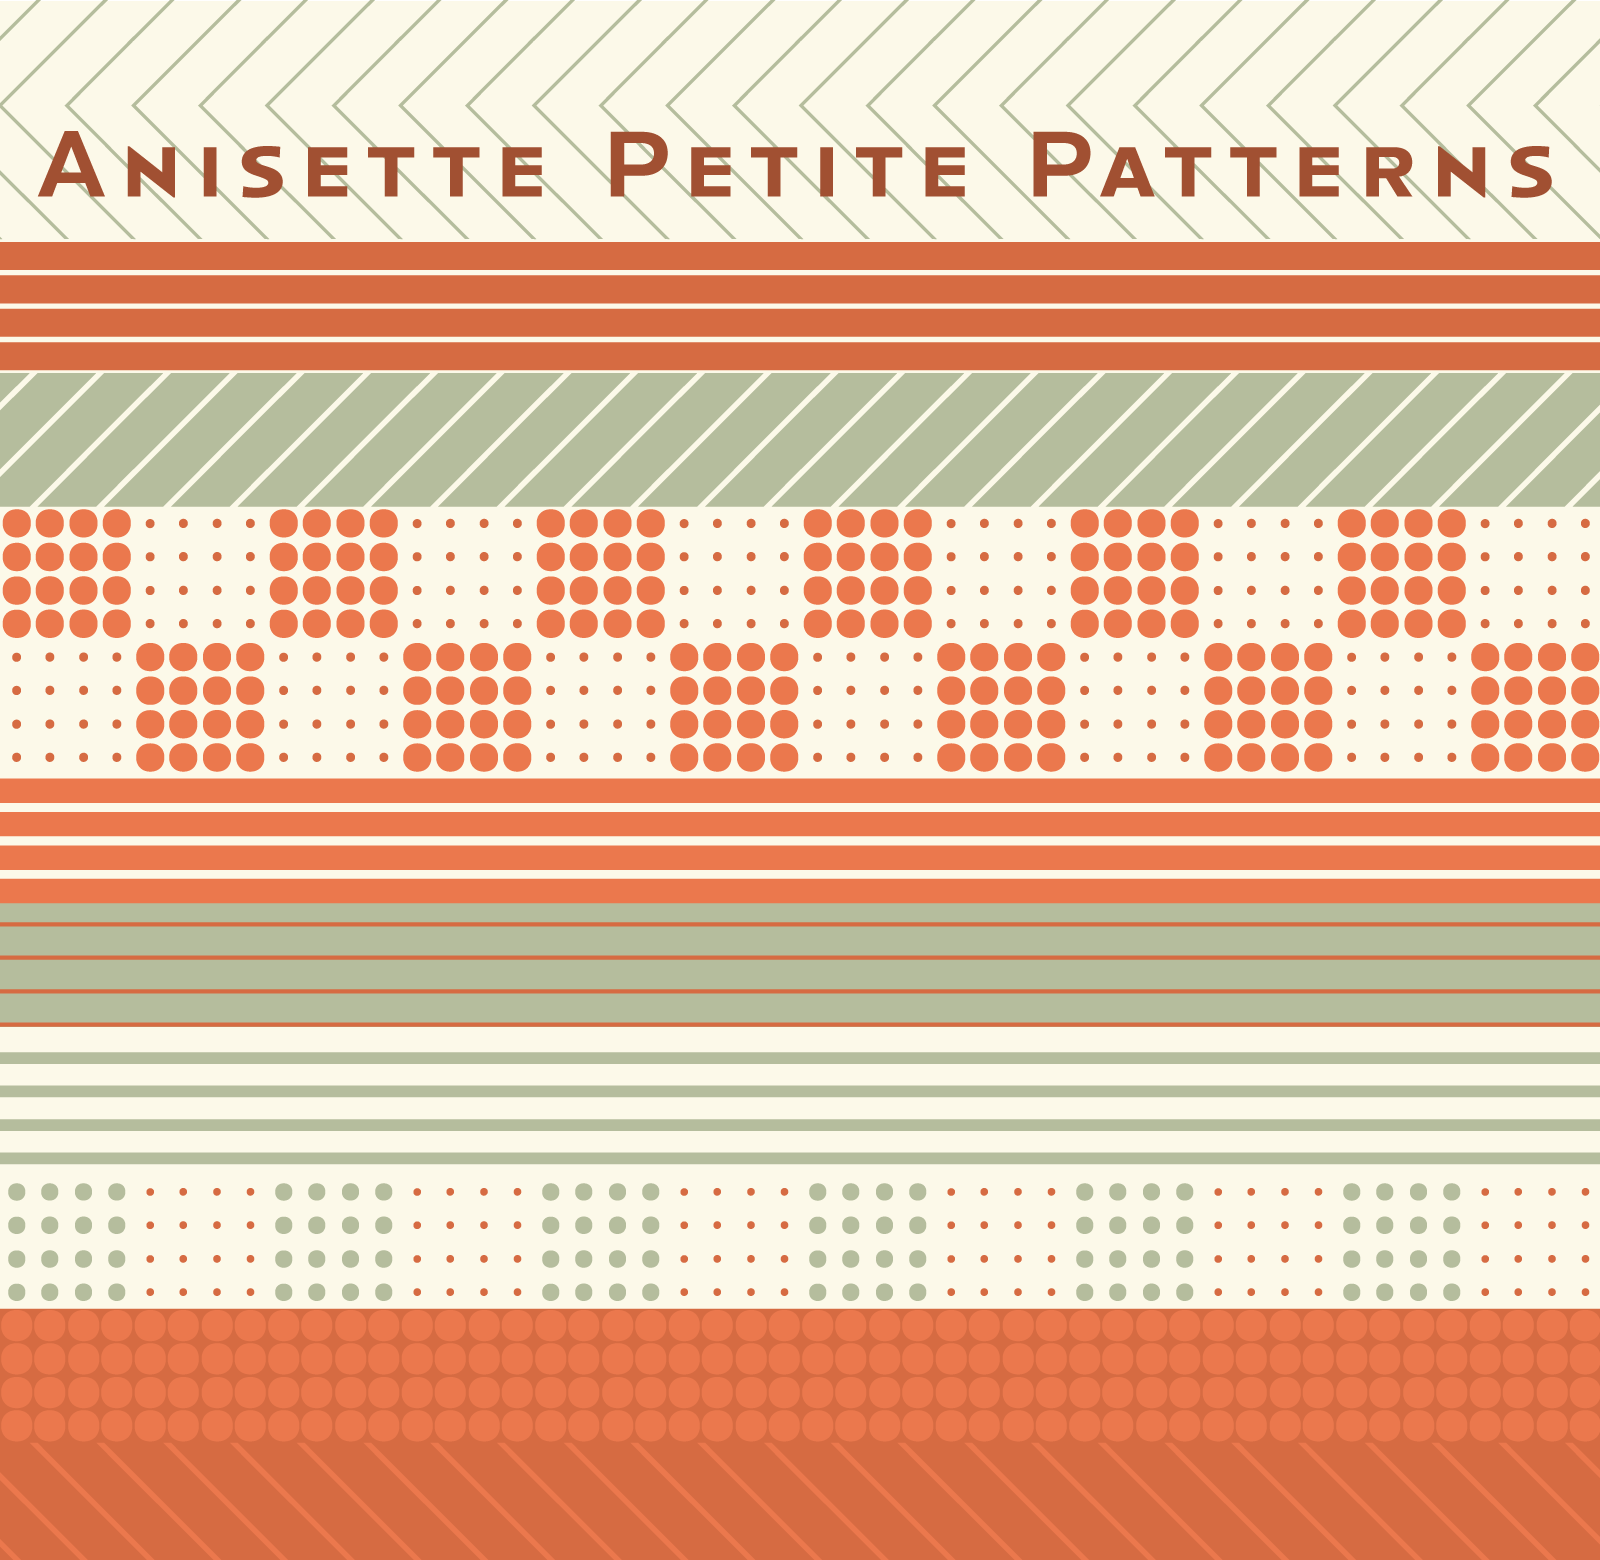 Anisette Petite patterns and borders in action